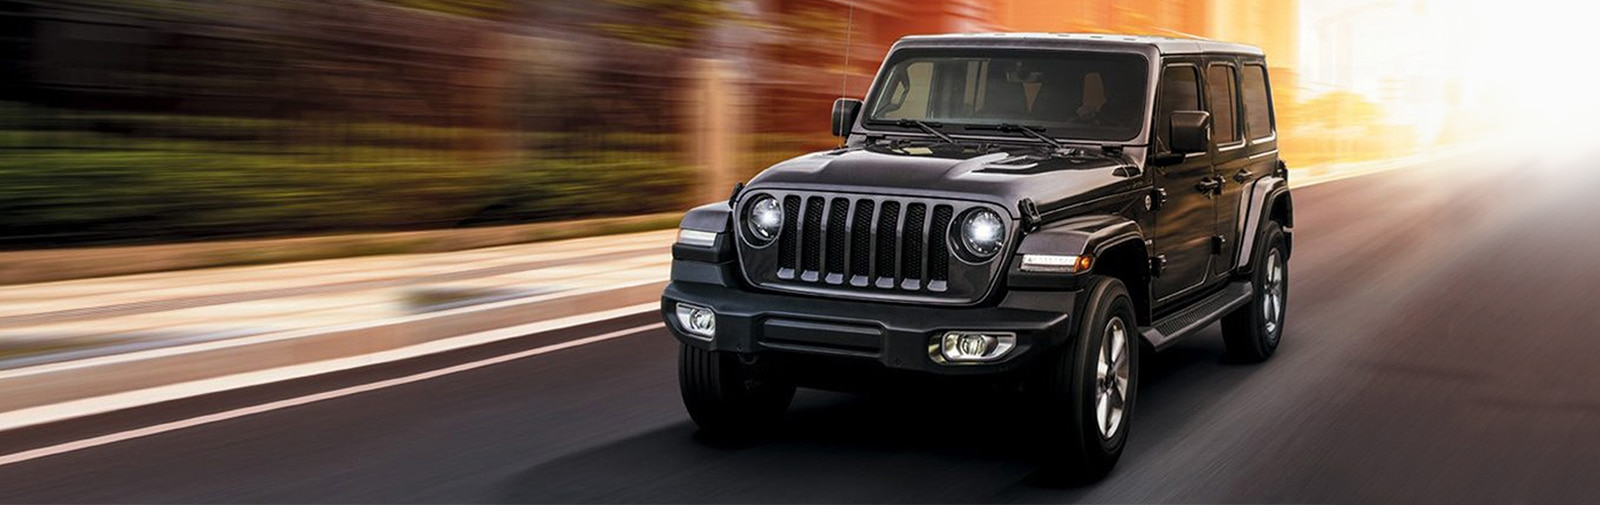 BUSINESS AANBIEDING: JEEP<sup>®</sup> WRANGLER